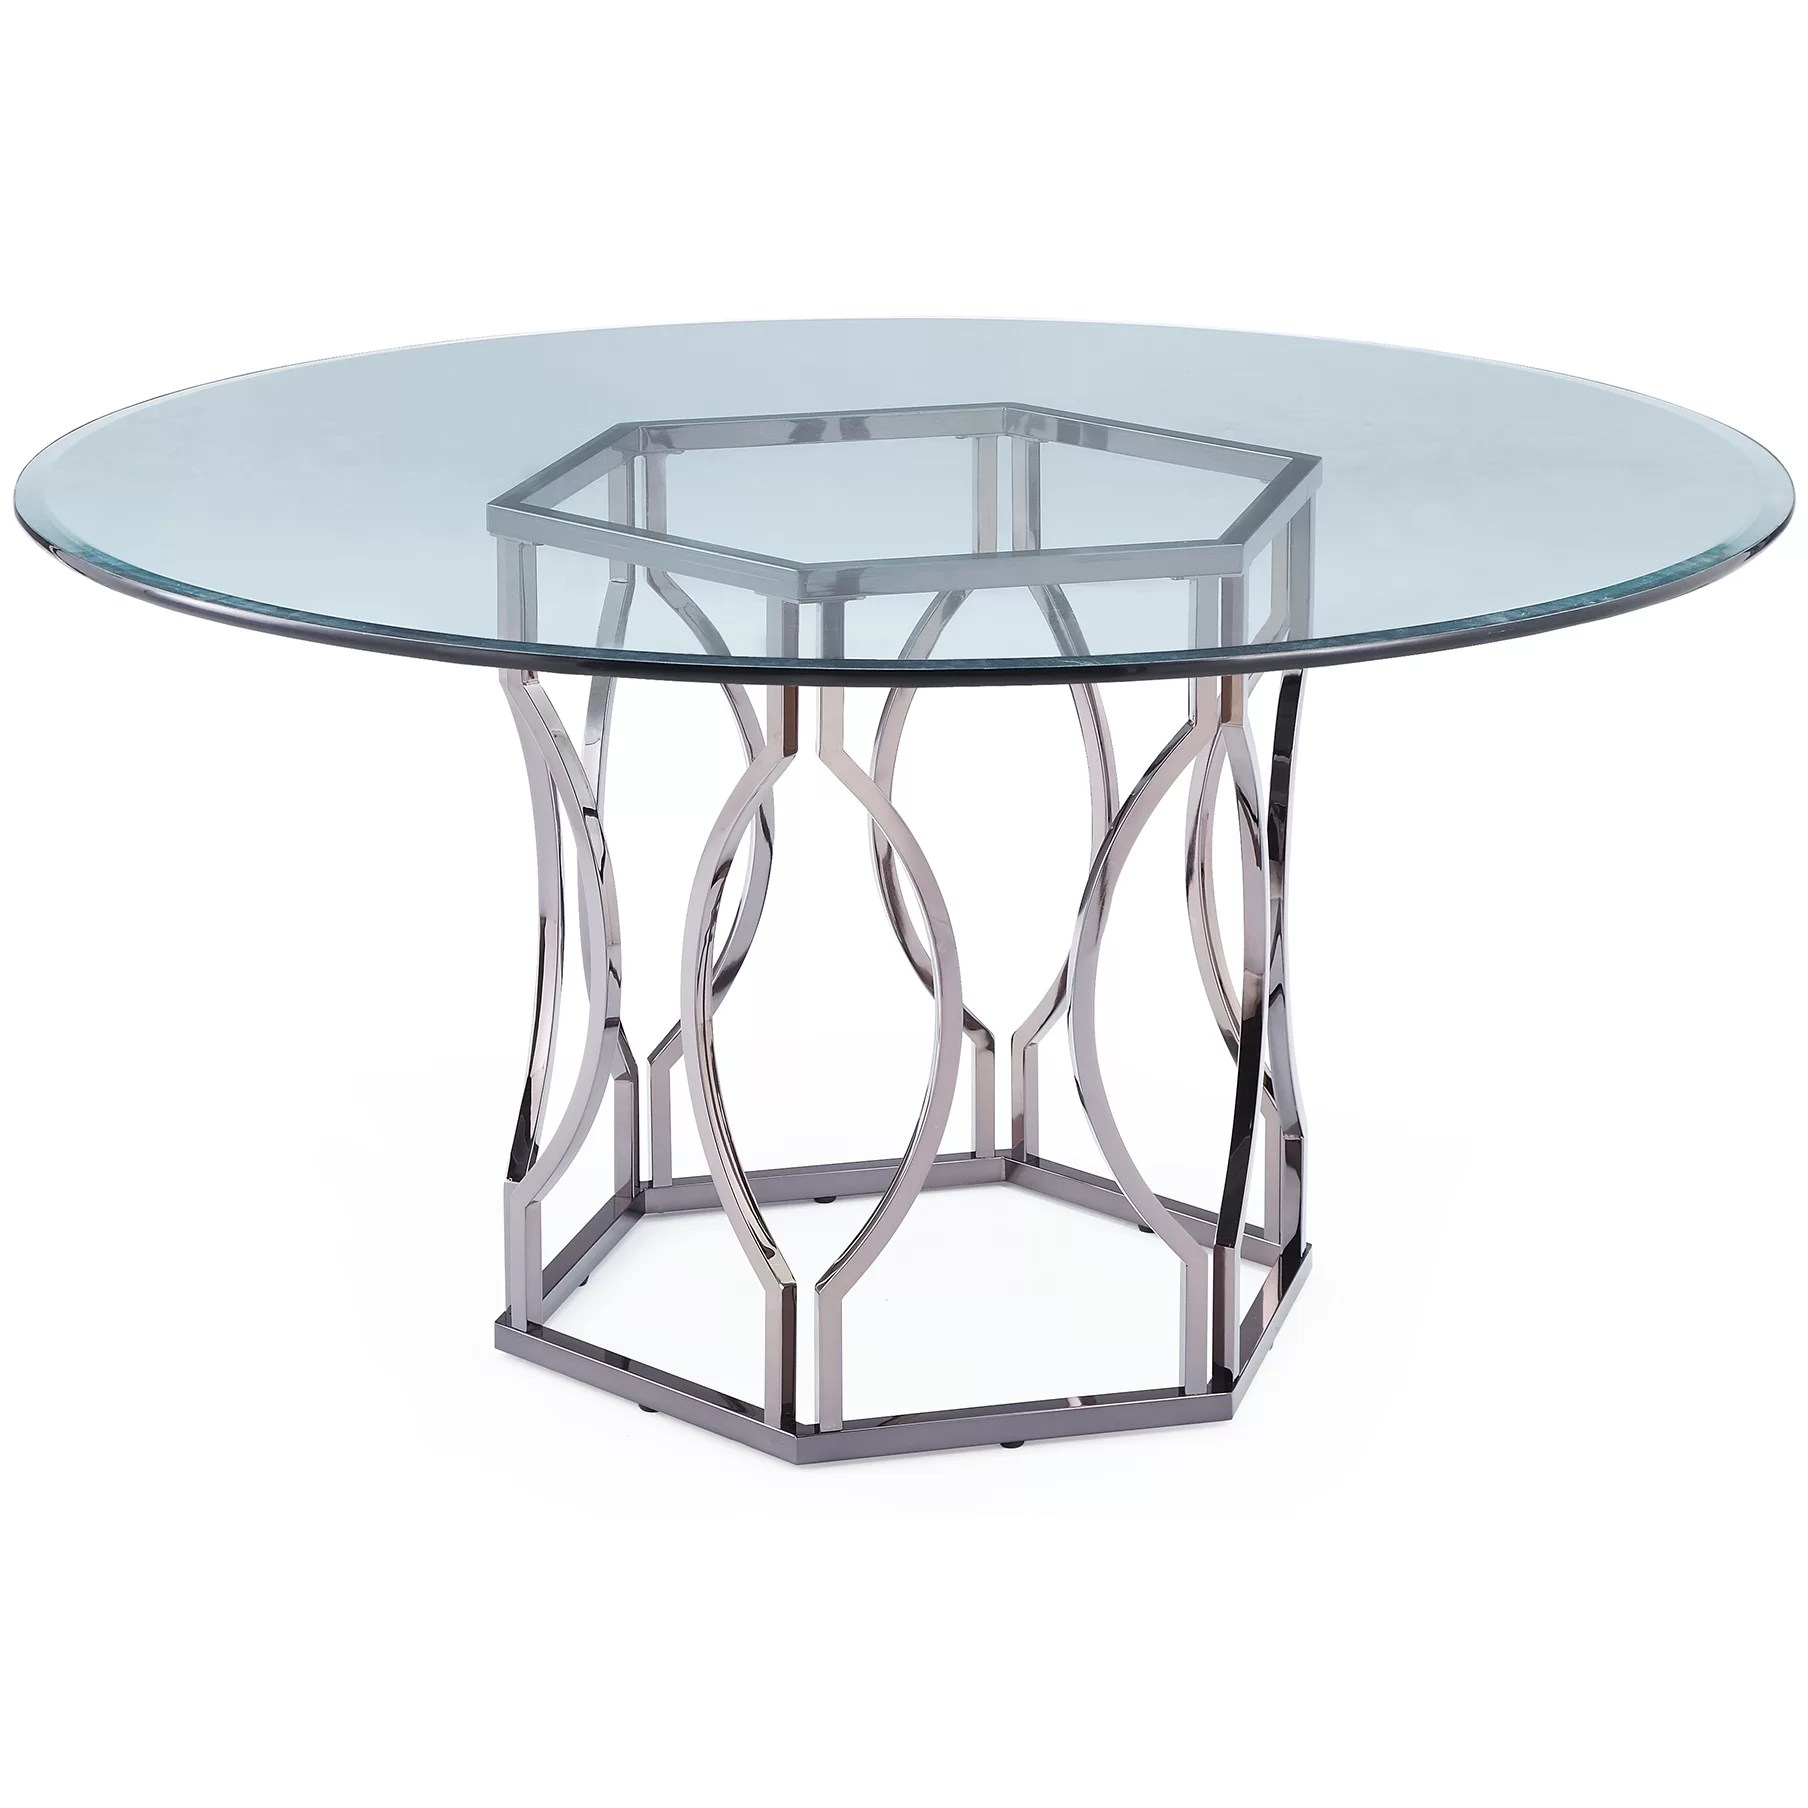 Table Glasses Mercer41 Viggo Round Glass Dining Table And Reviews Wayfair